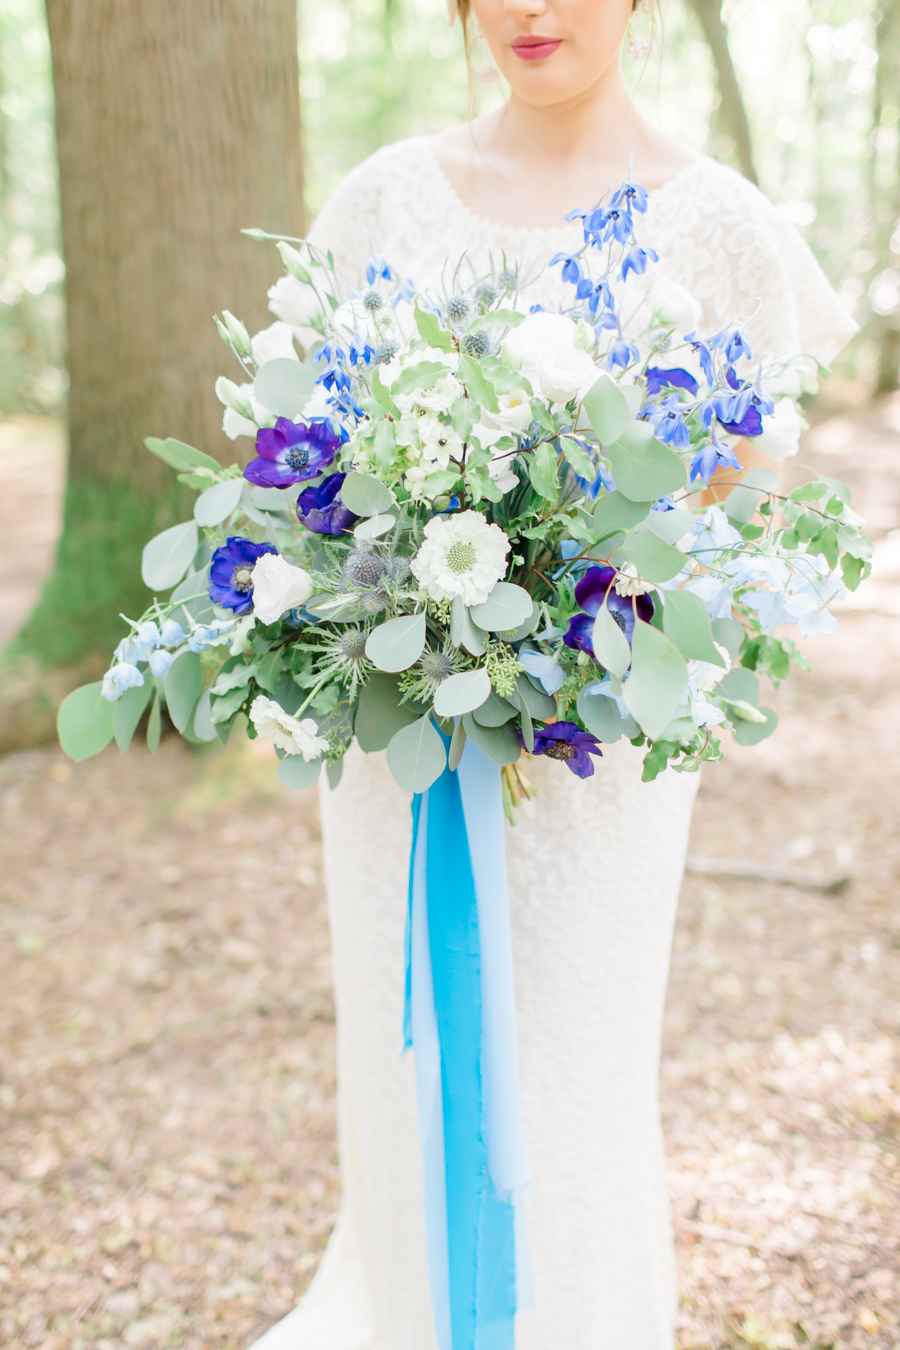 Beautiful and delicate blue tones for a woodland wedding styled by Sara's Events Flowers. Photo credit Natalie Stevenson Photography (16)